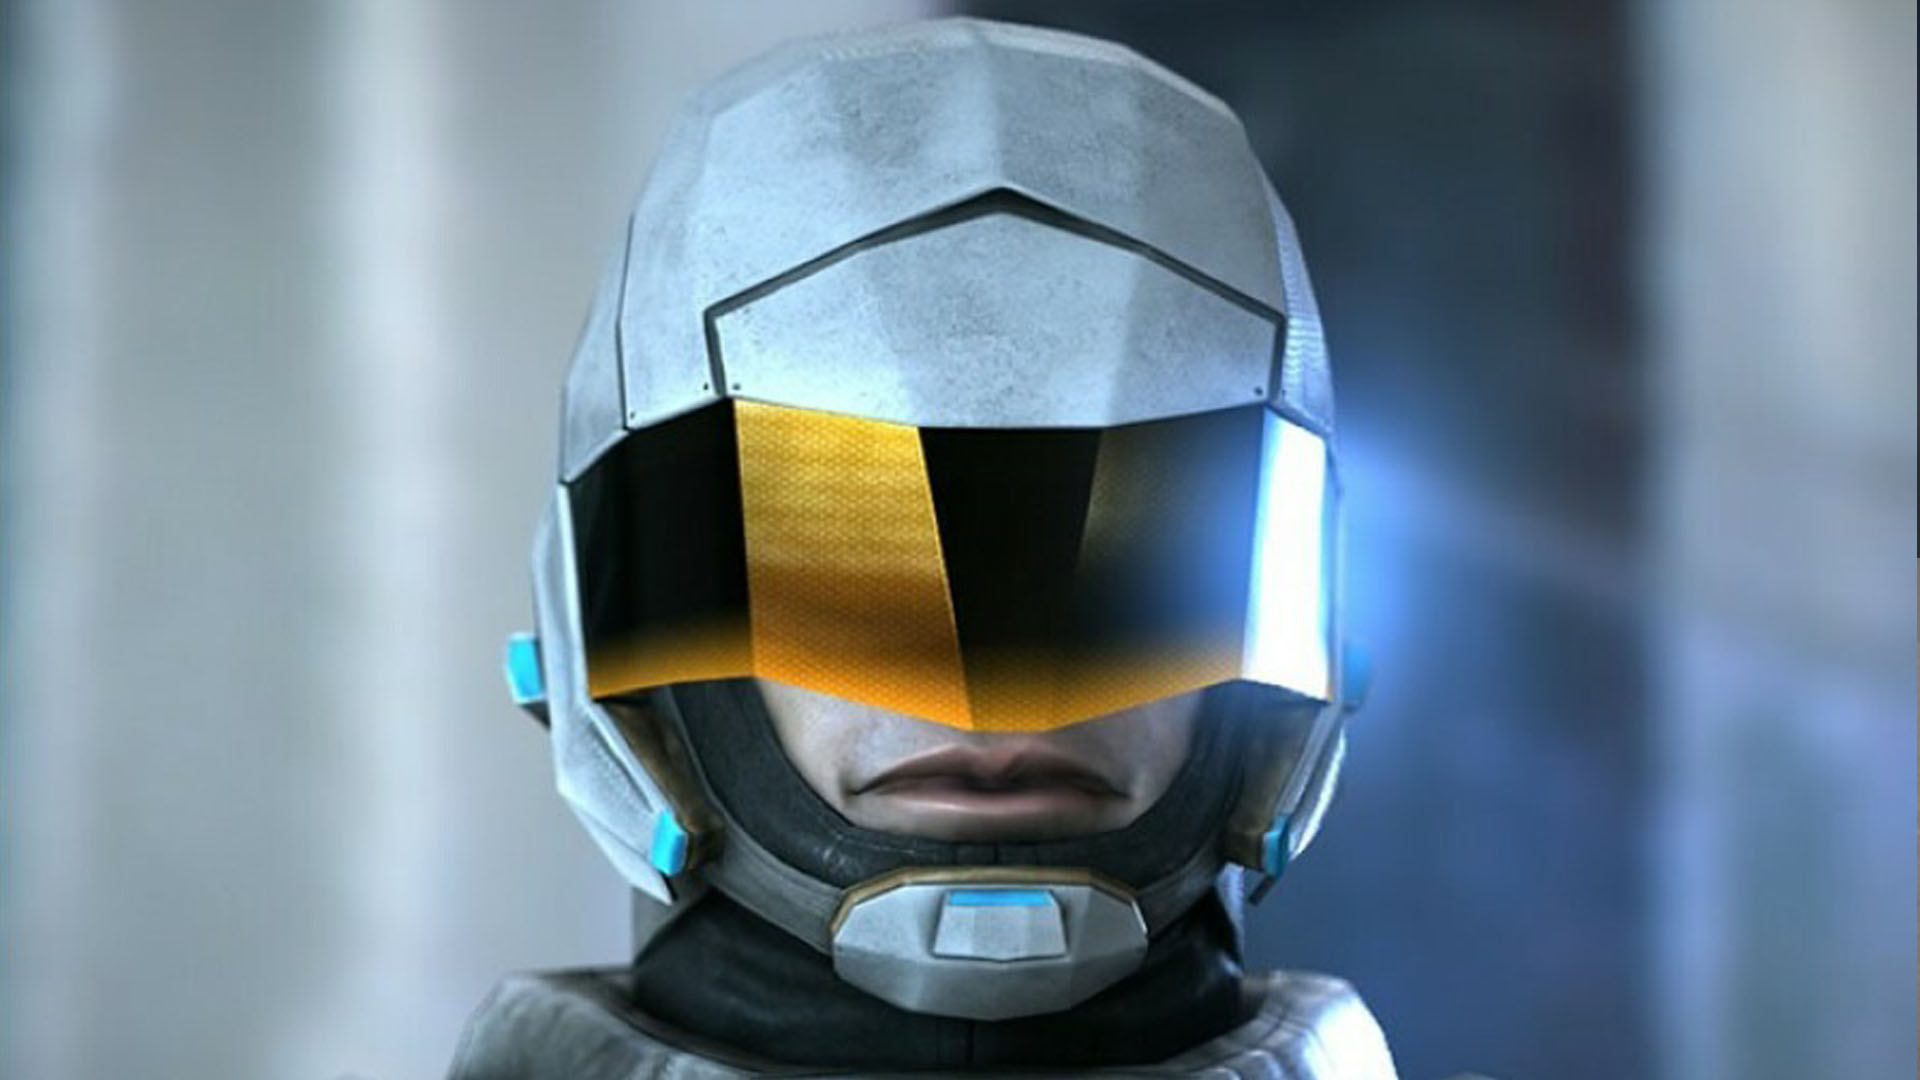 An image showing Futuristic Soldier animated character, created with Unity Engine.